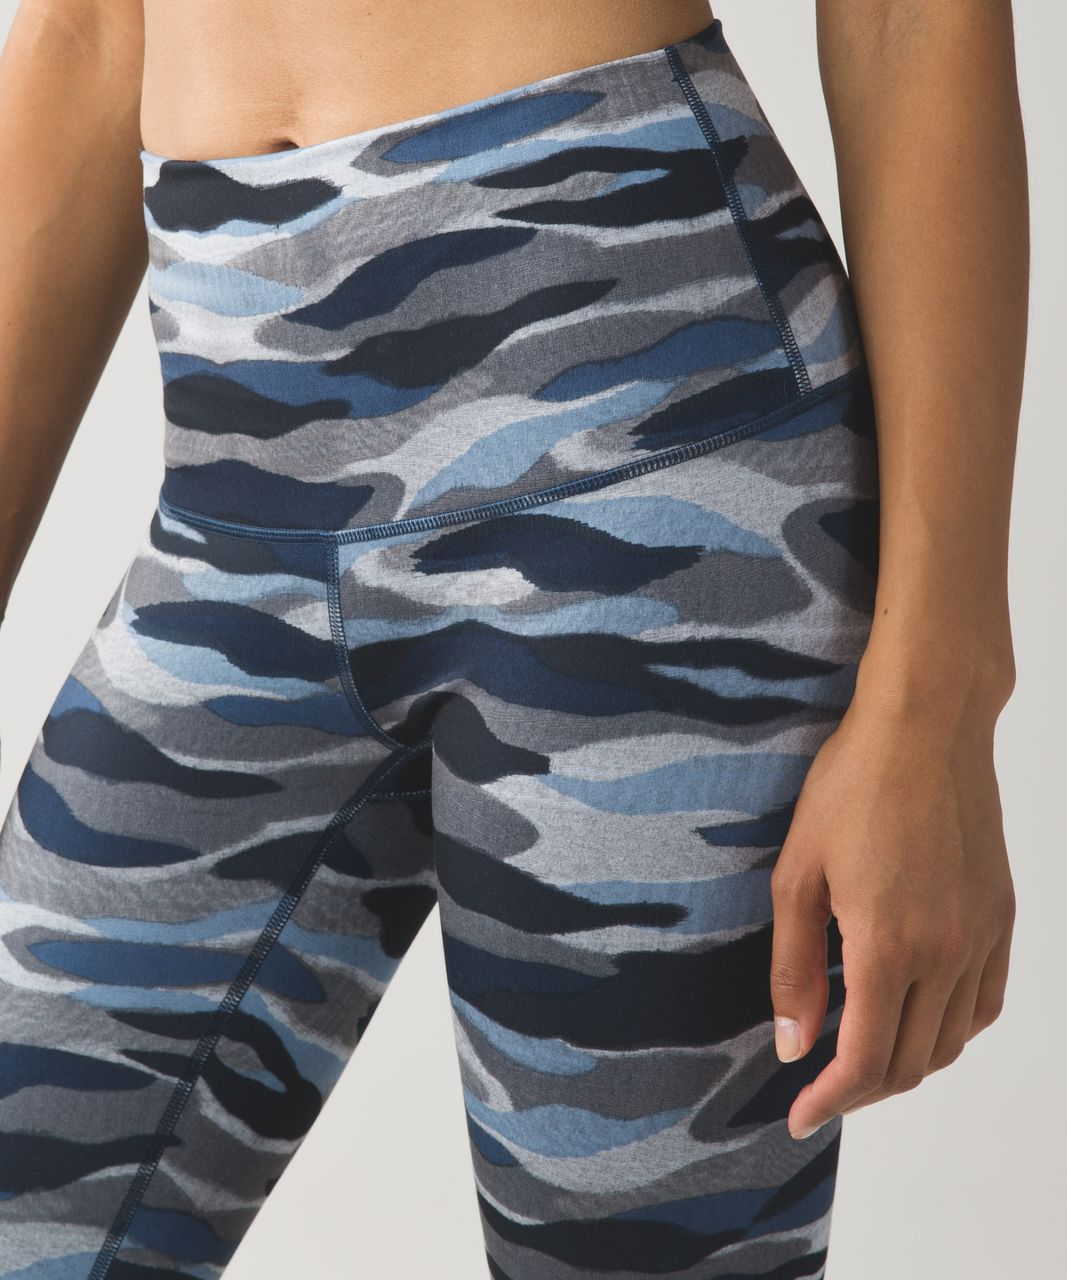 Lululemon Wunder Under Pant (Hi-Rise) *Full-On Luon - Mini Coast Camo Deep Navy Multi